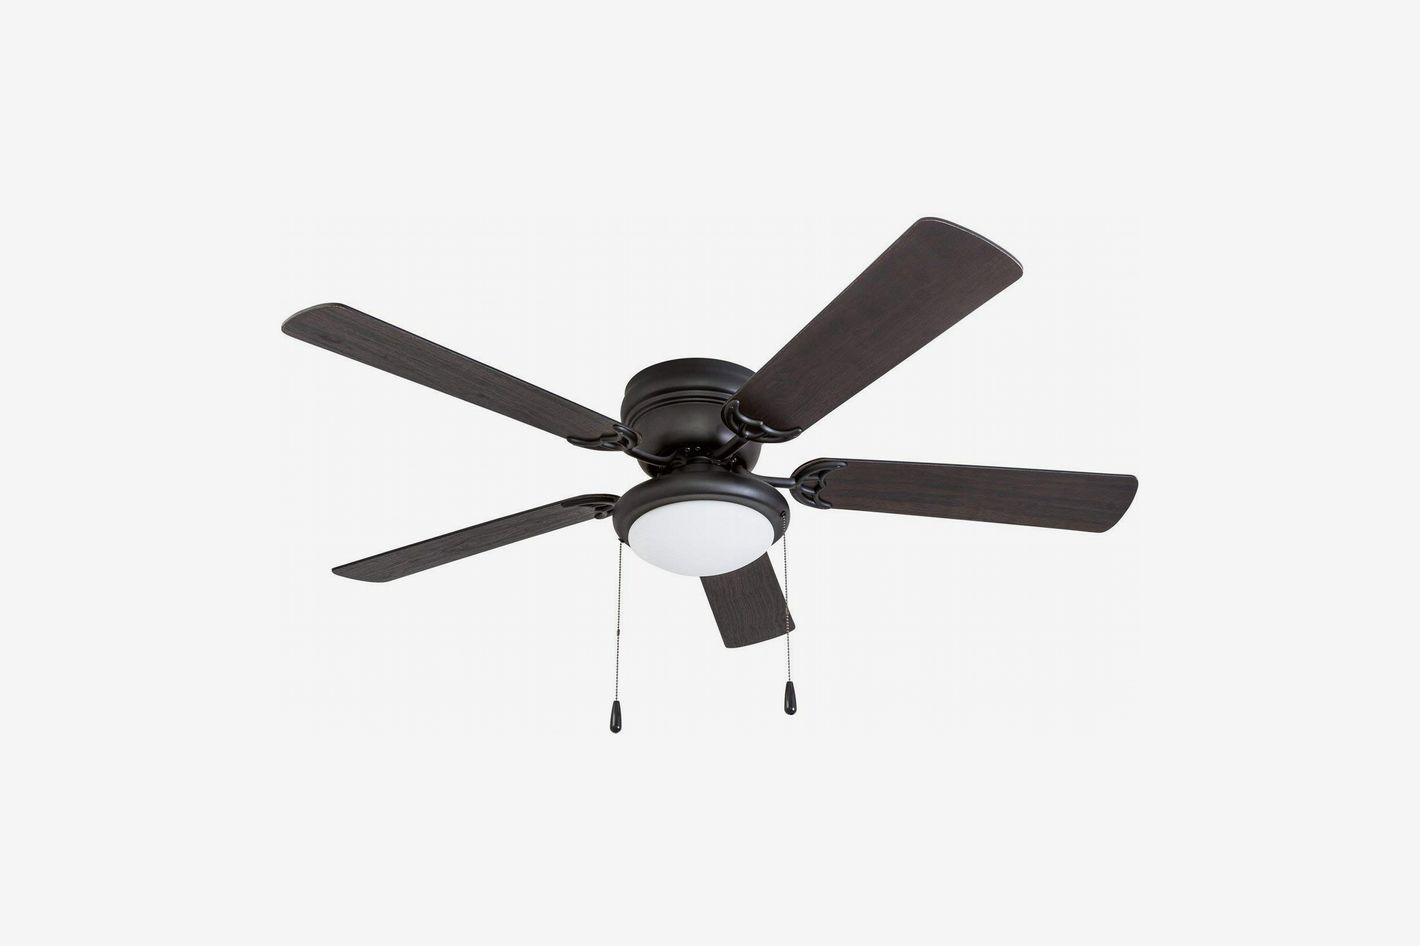 Portage Bay 50251 West Hill Ceiling Fan With Bowl Light Kit Matte Black 52